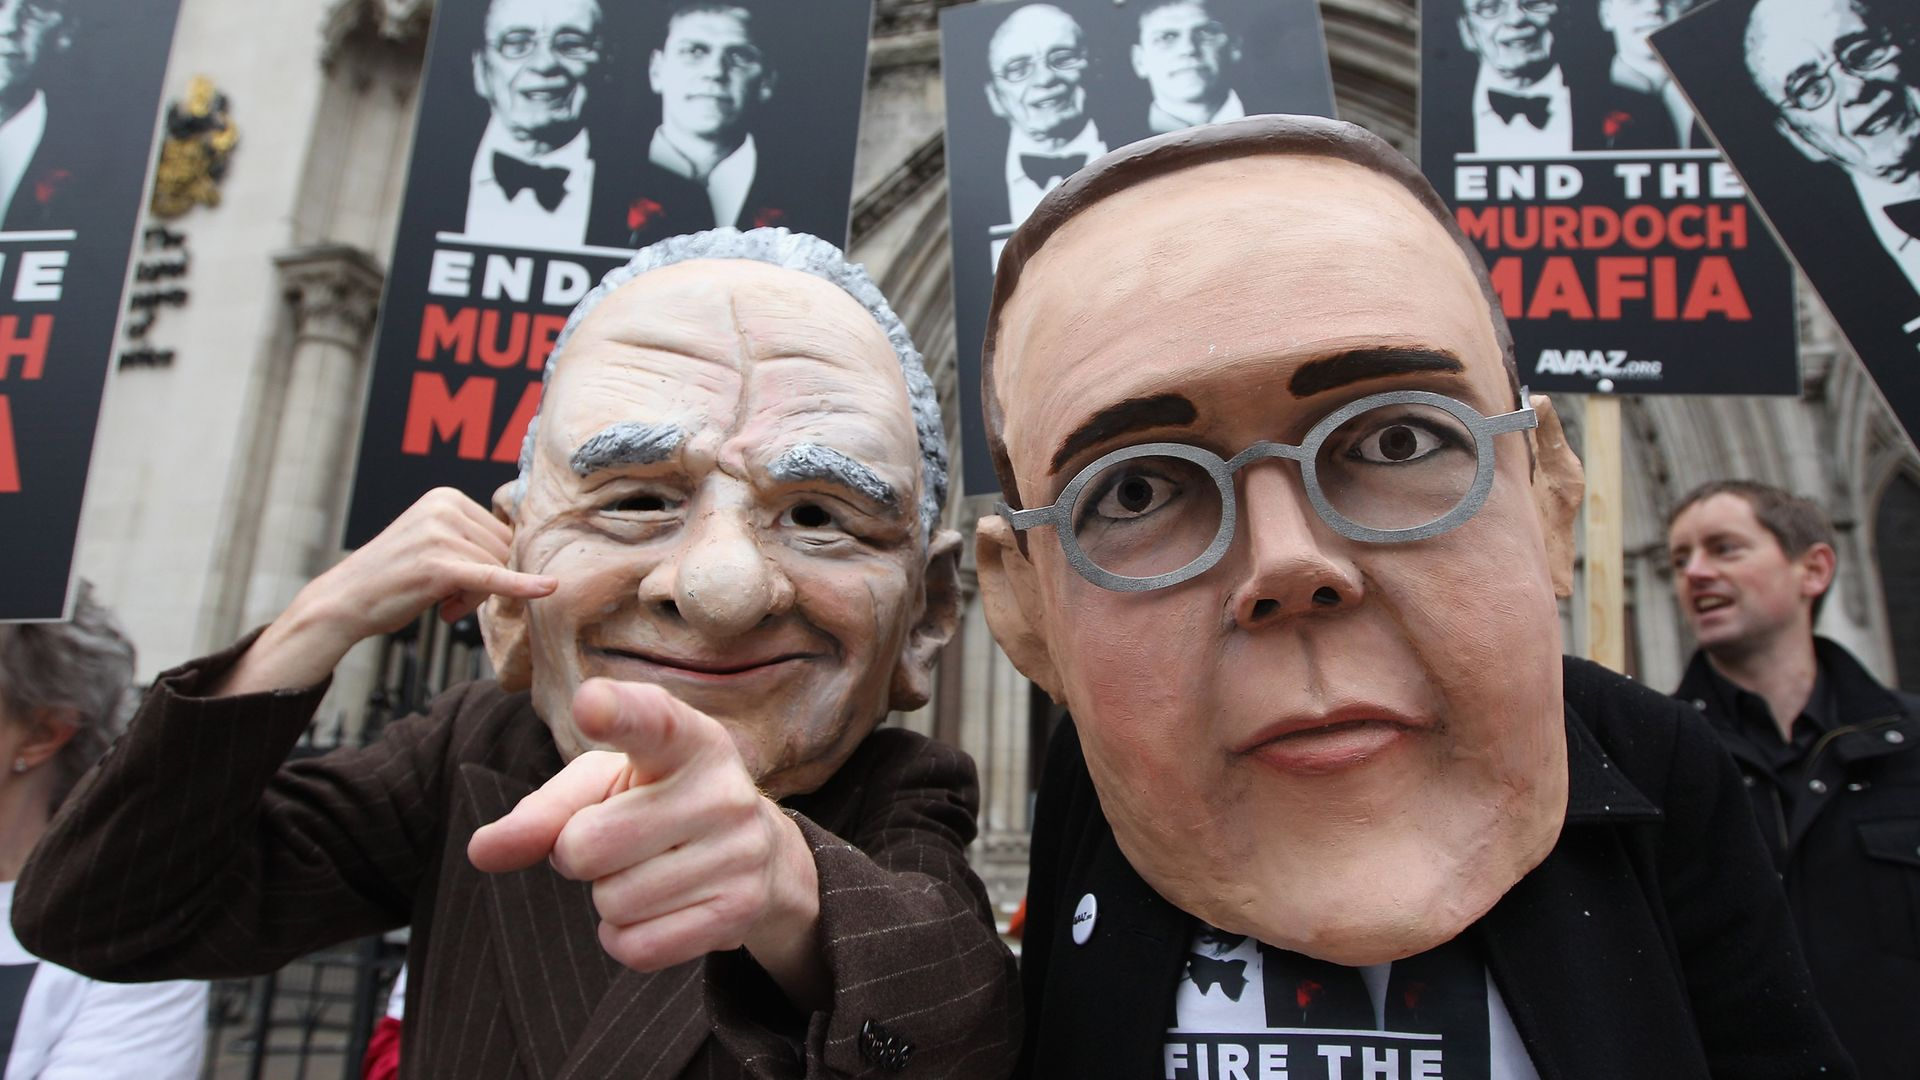 Protesters from the campaign group 'Avaaz' demonstrate outside the High Court with large James and Rupert Murdoch masks - Credit: Getty Images